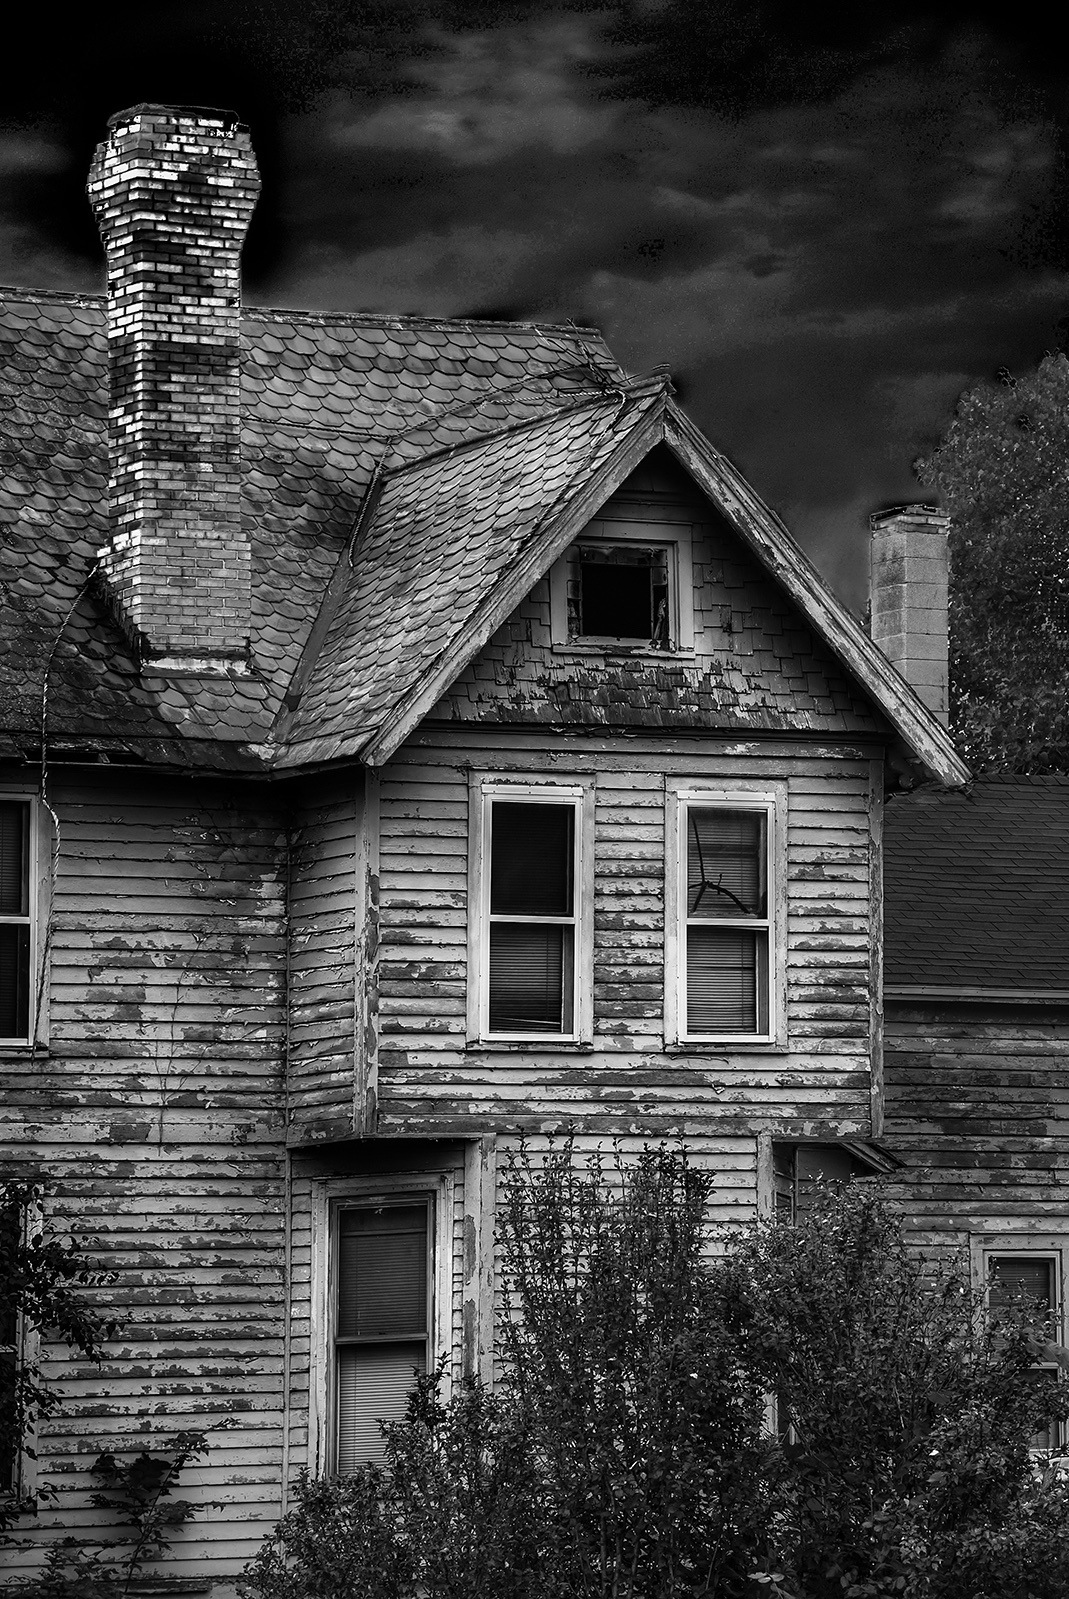 Abandoned House in Lorain County,Ohio by Walter Novak